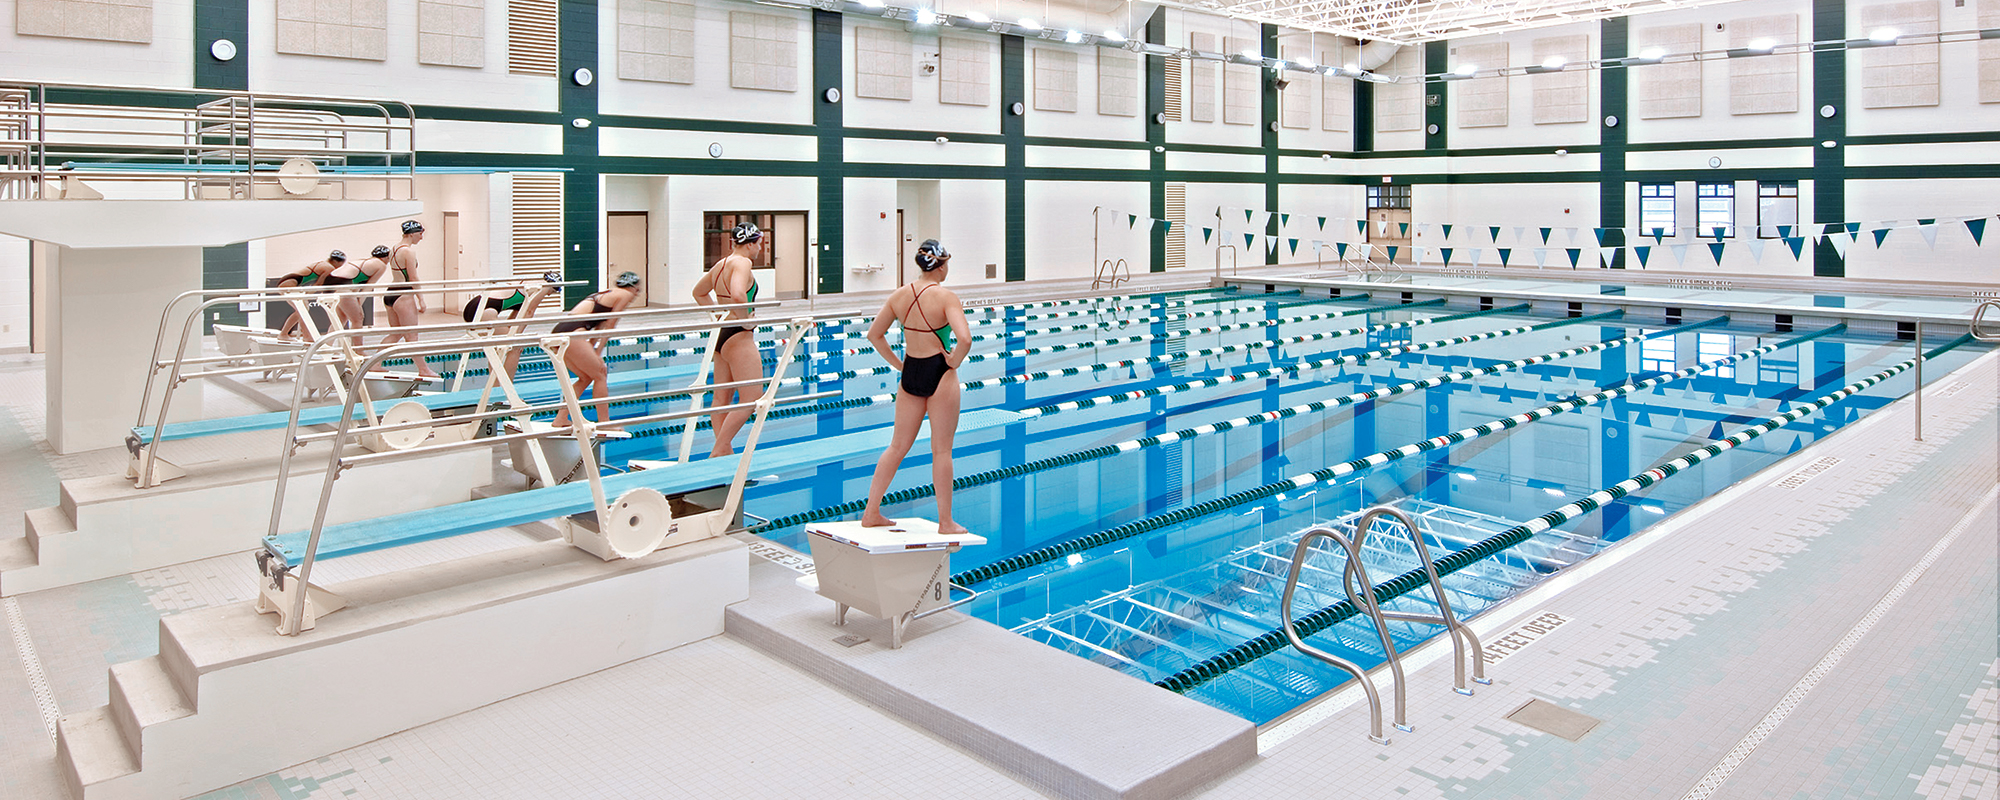 commercial pool bulkhead